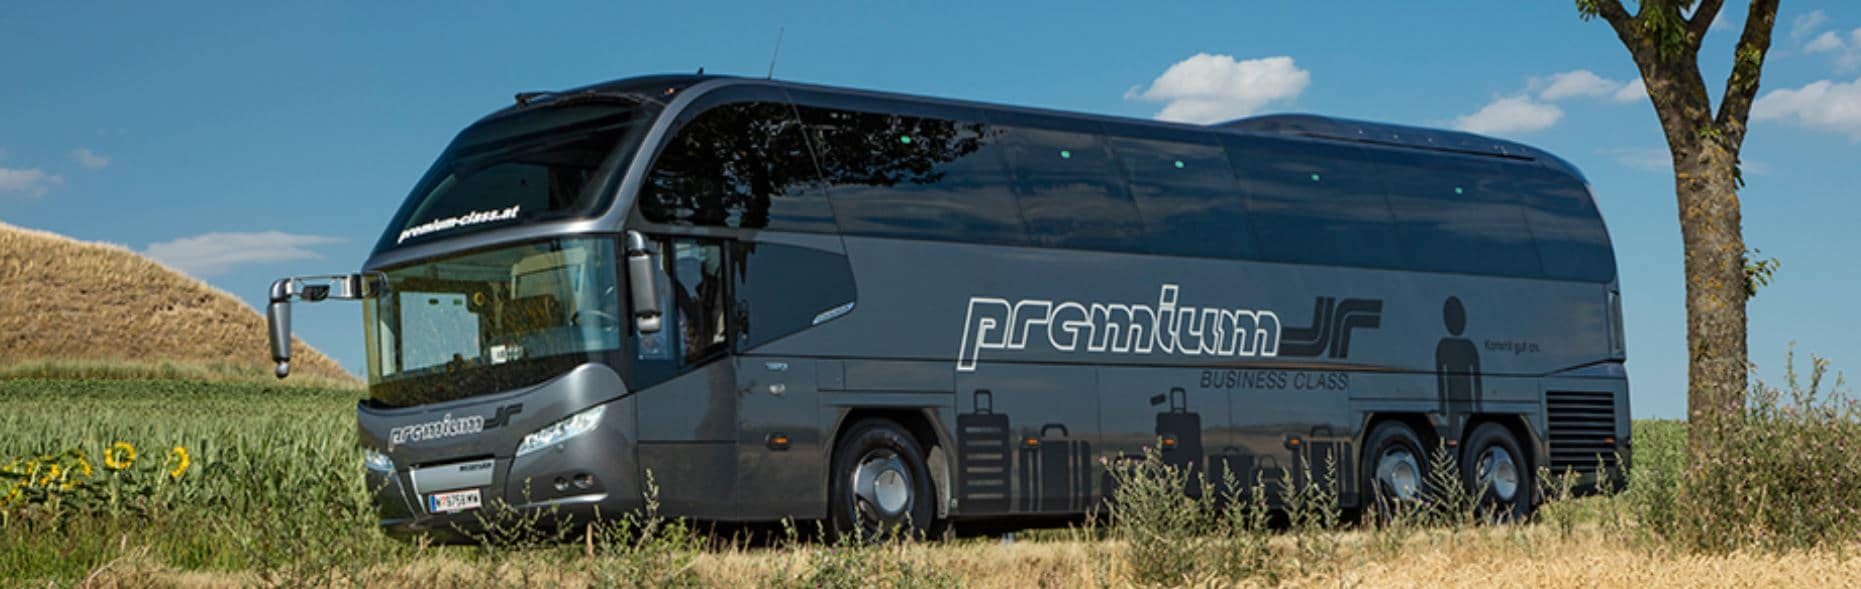 Premium Bus in der Natur